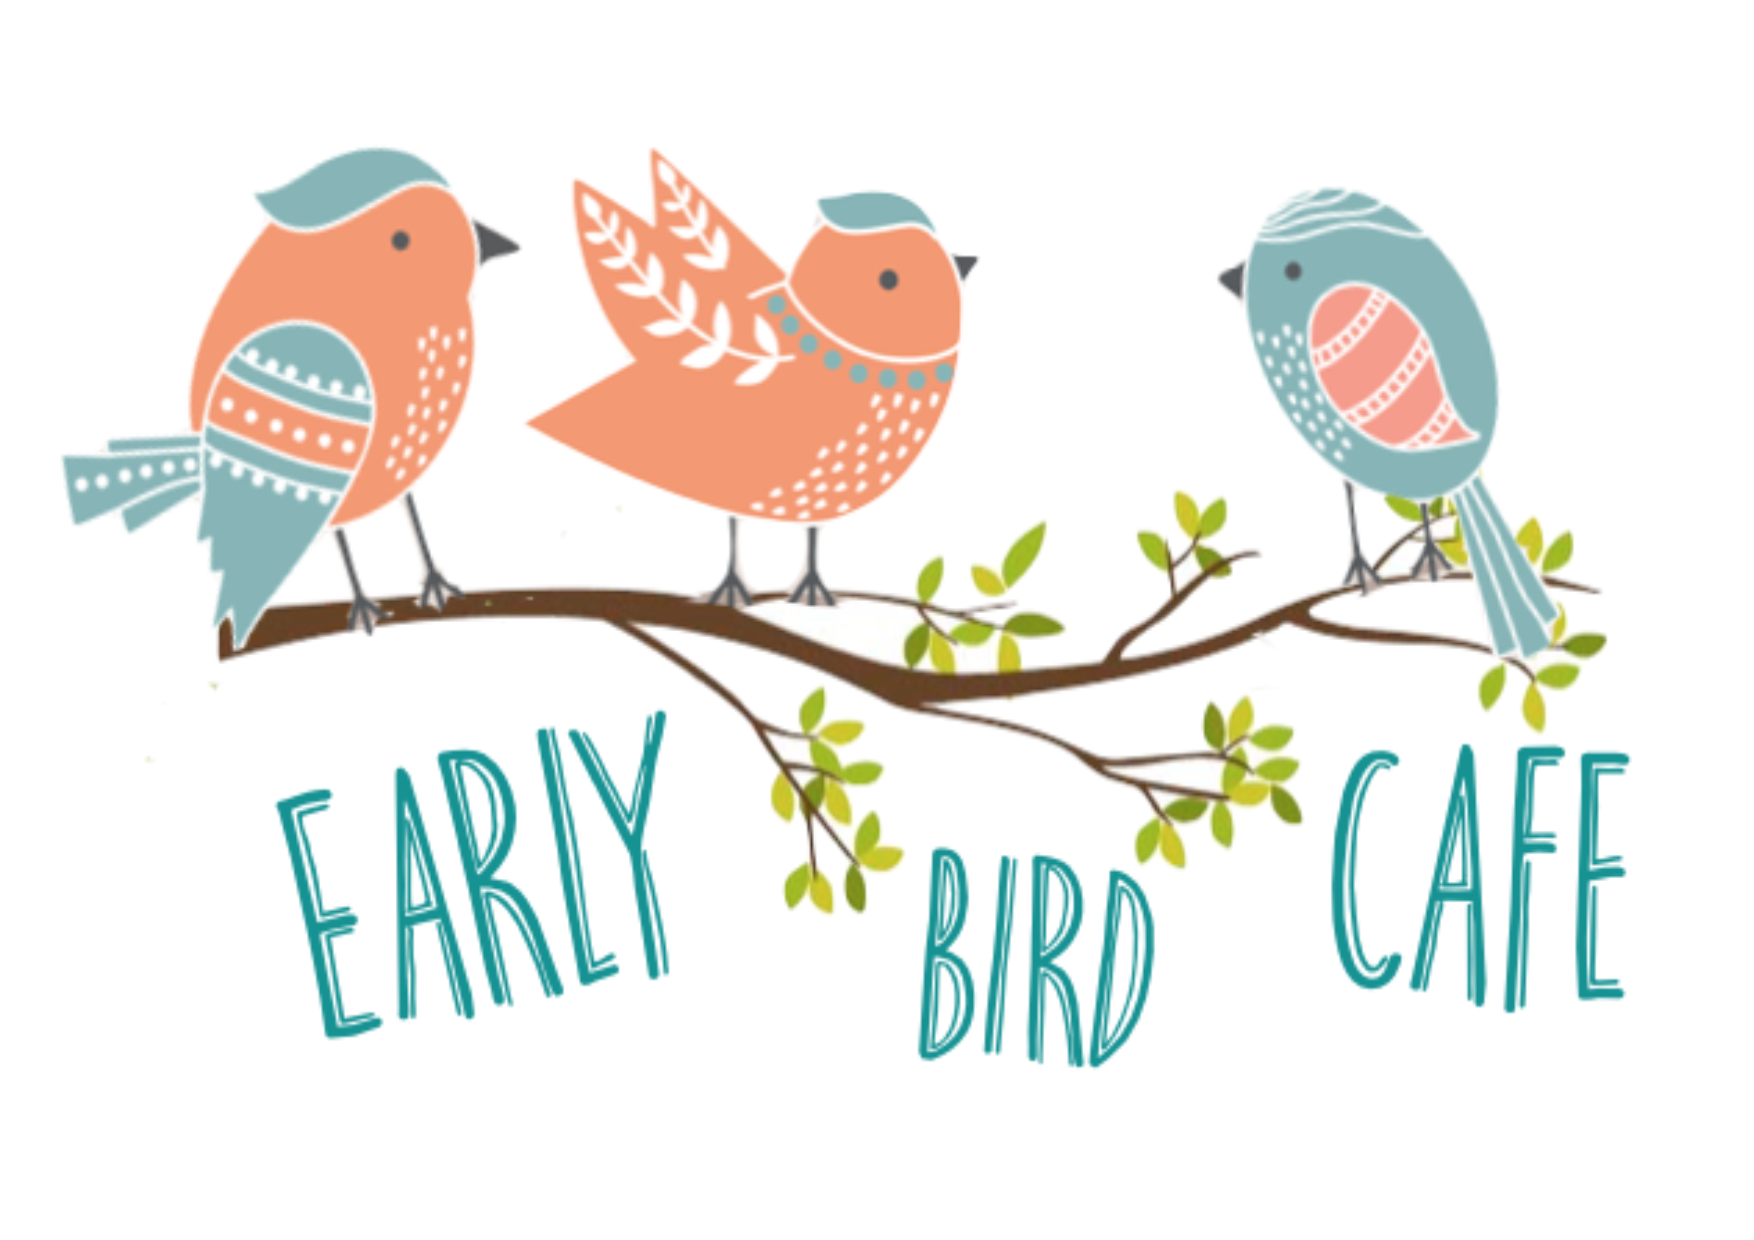 Early Bird cafe new 3 bird log